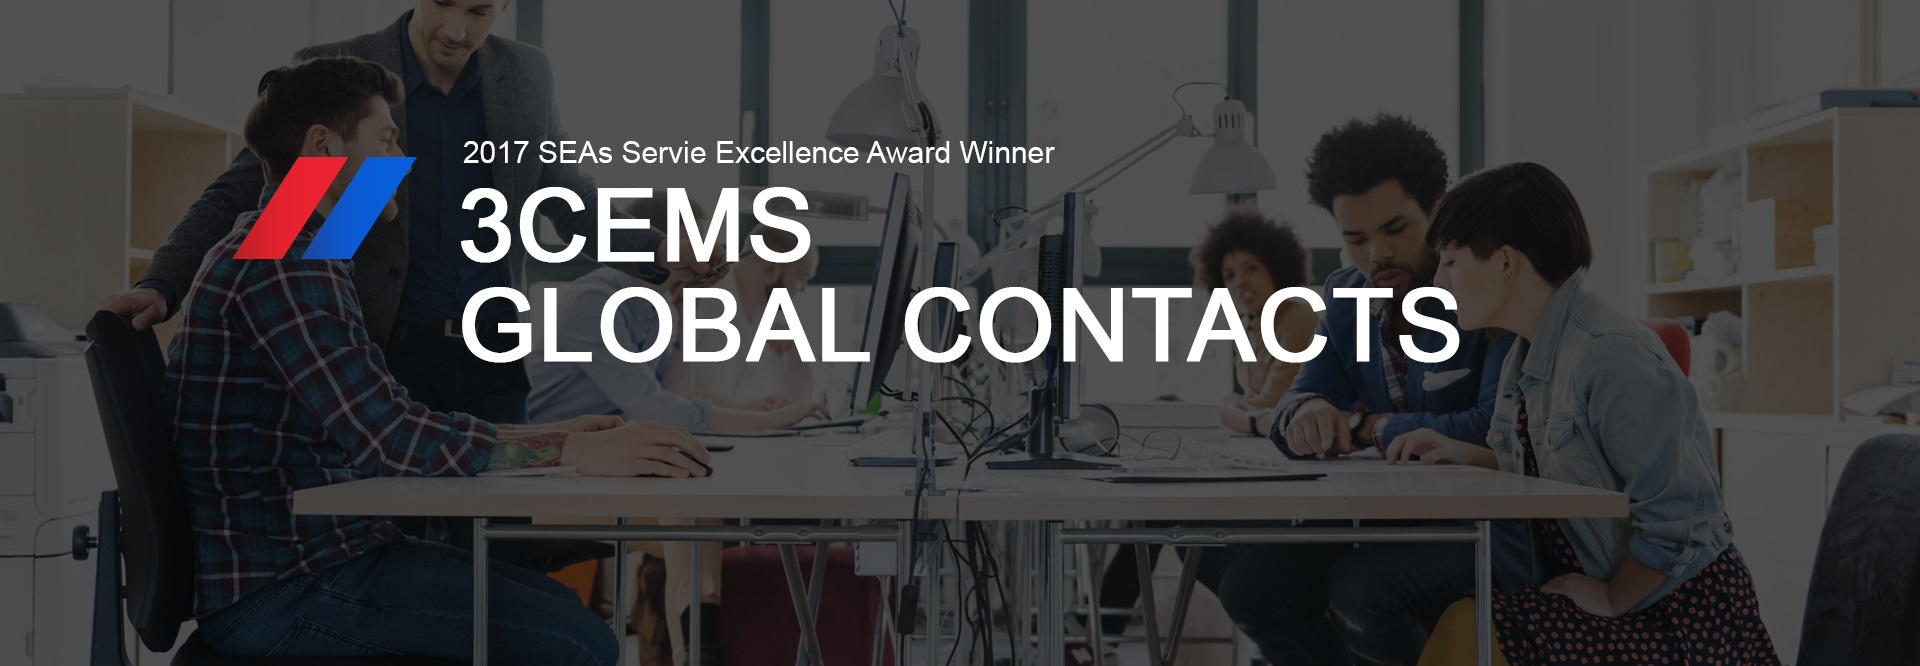 3CEMS Contact